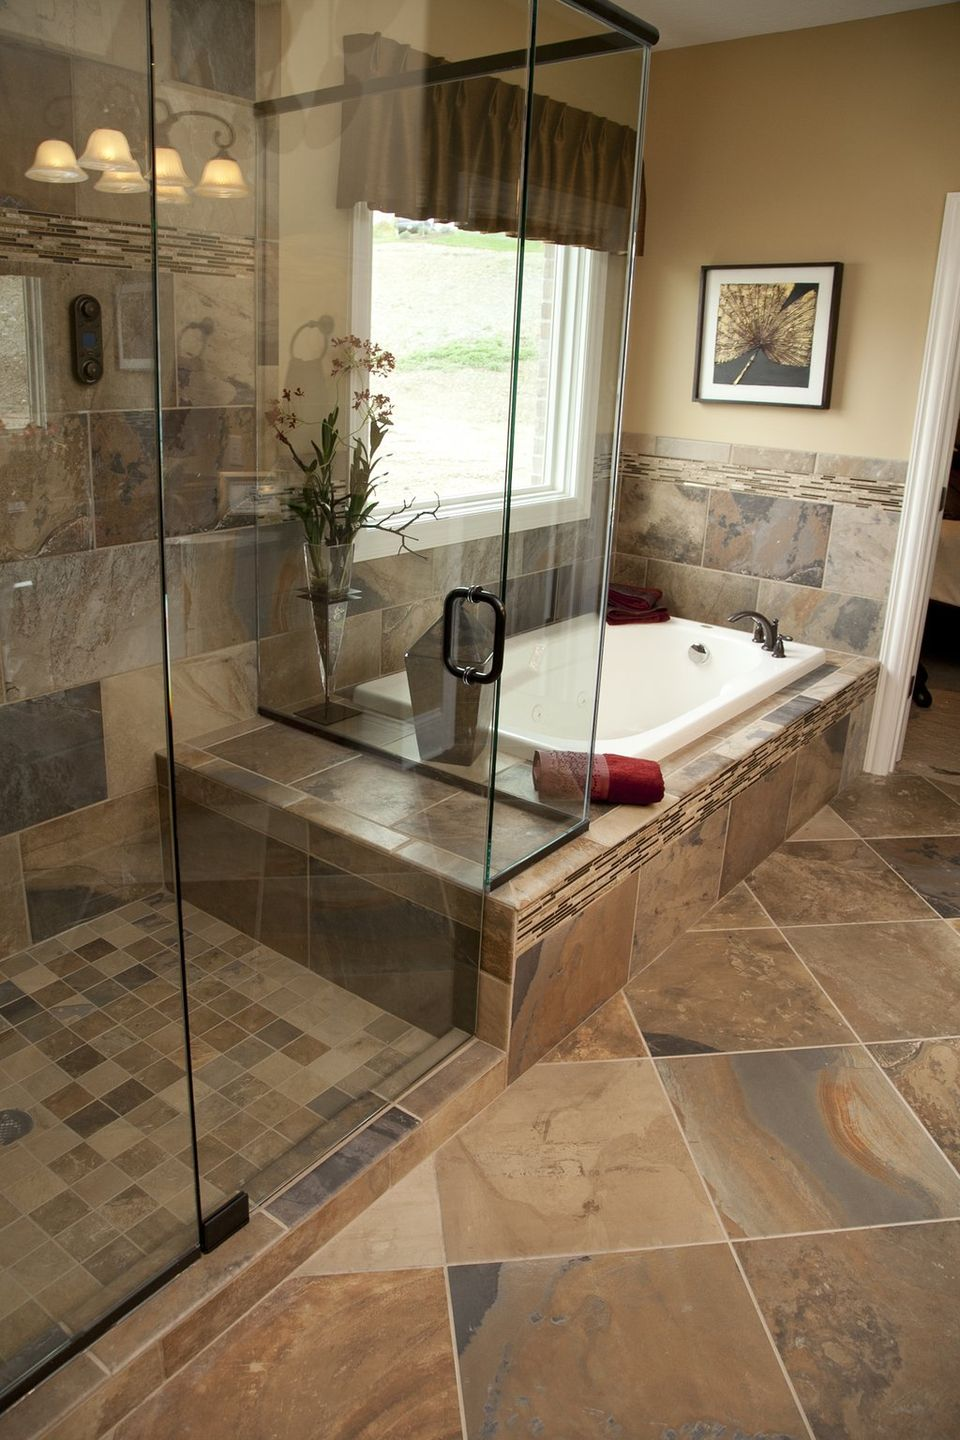 33 stunning pictures and ideas of natural stone bathroom floor tiles Bathroom flooring tile